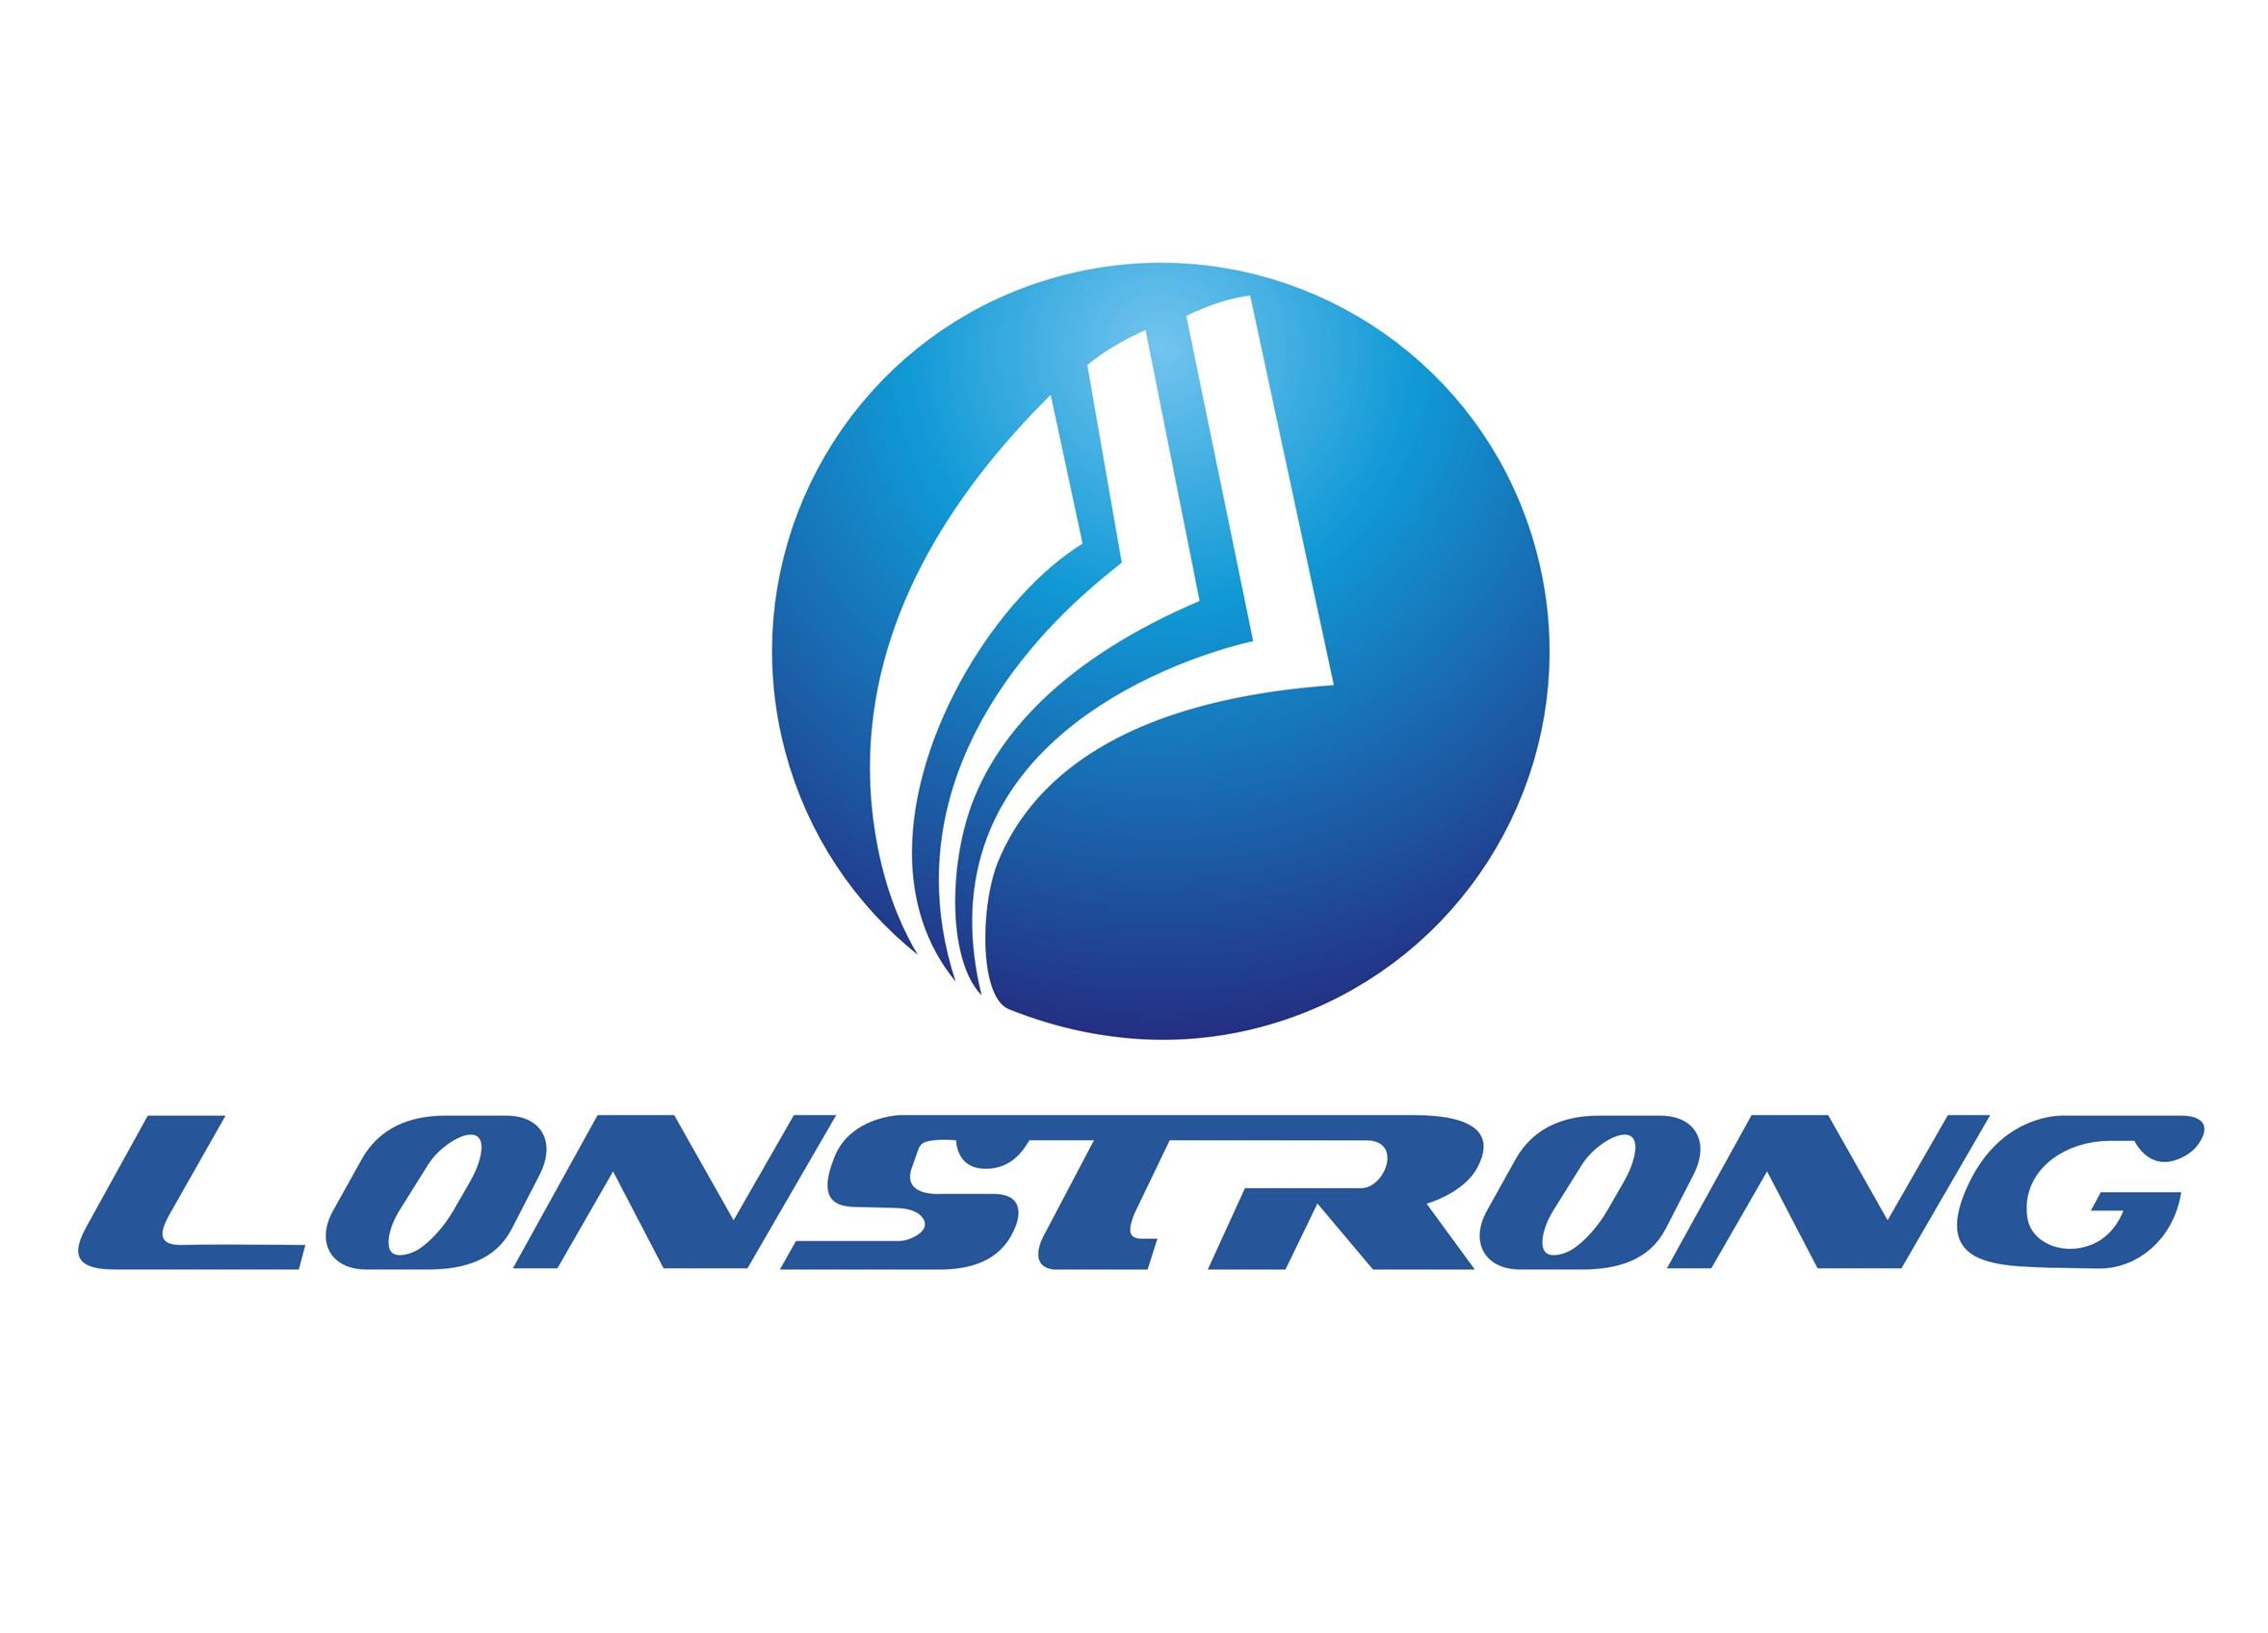 LONSTRONG IMP AND EXP CO., LTD. logo